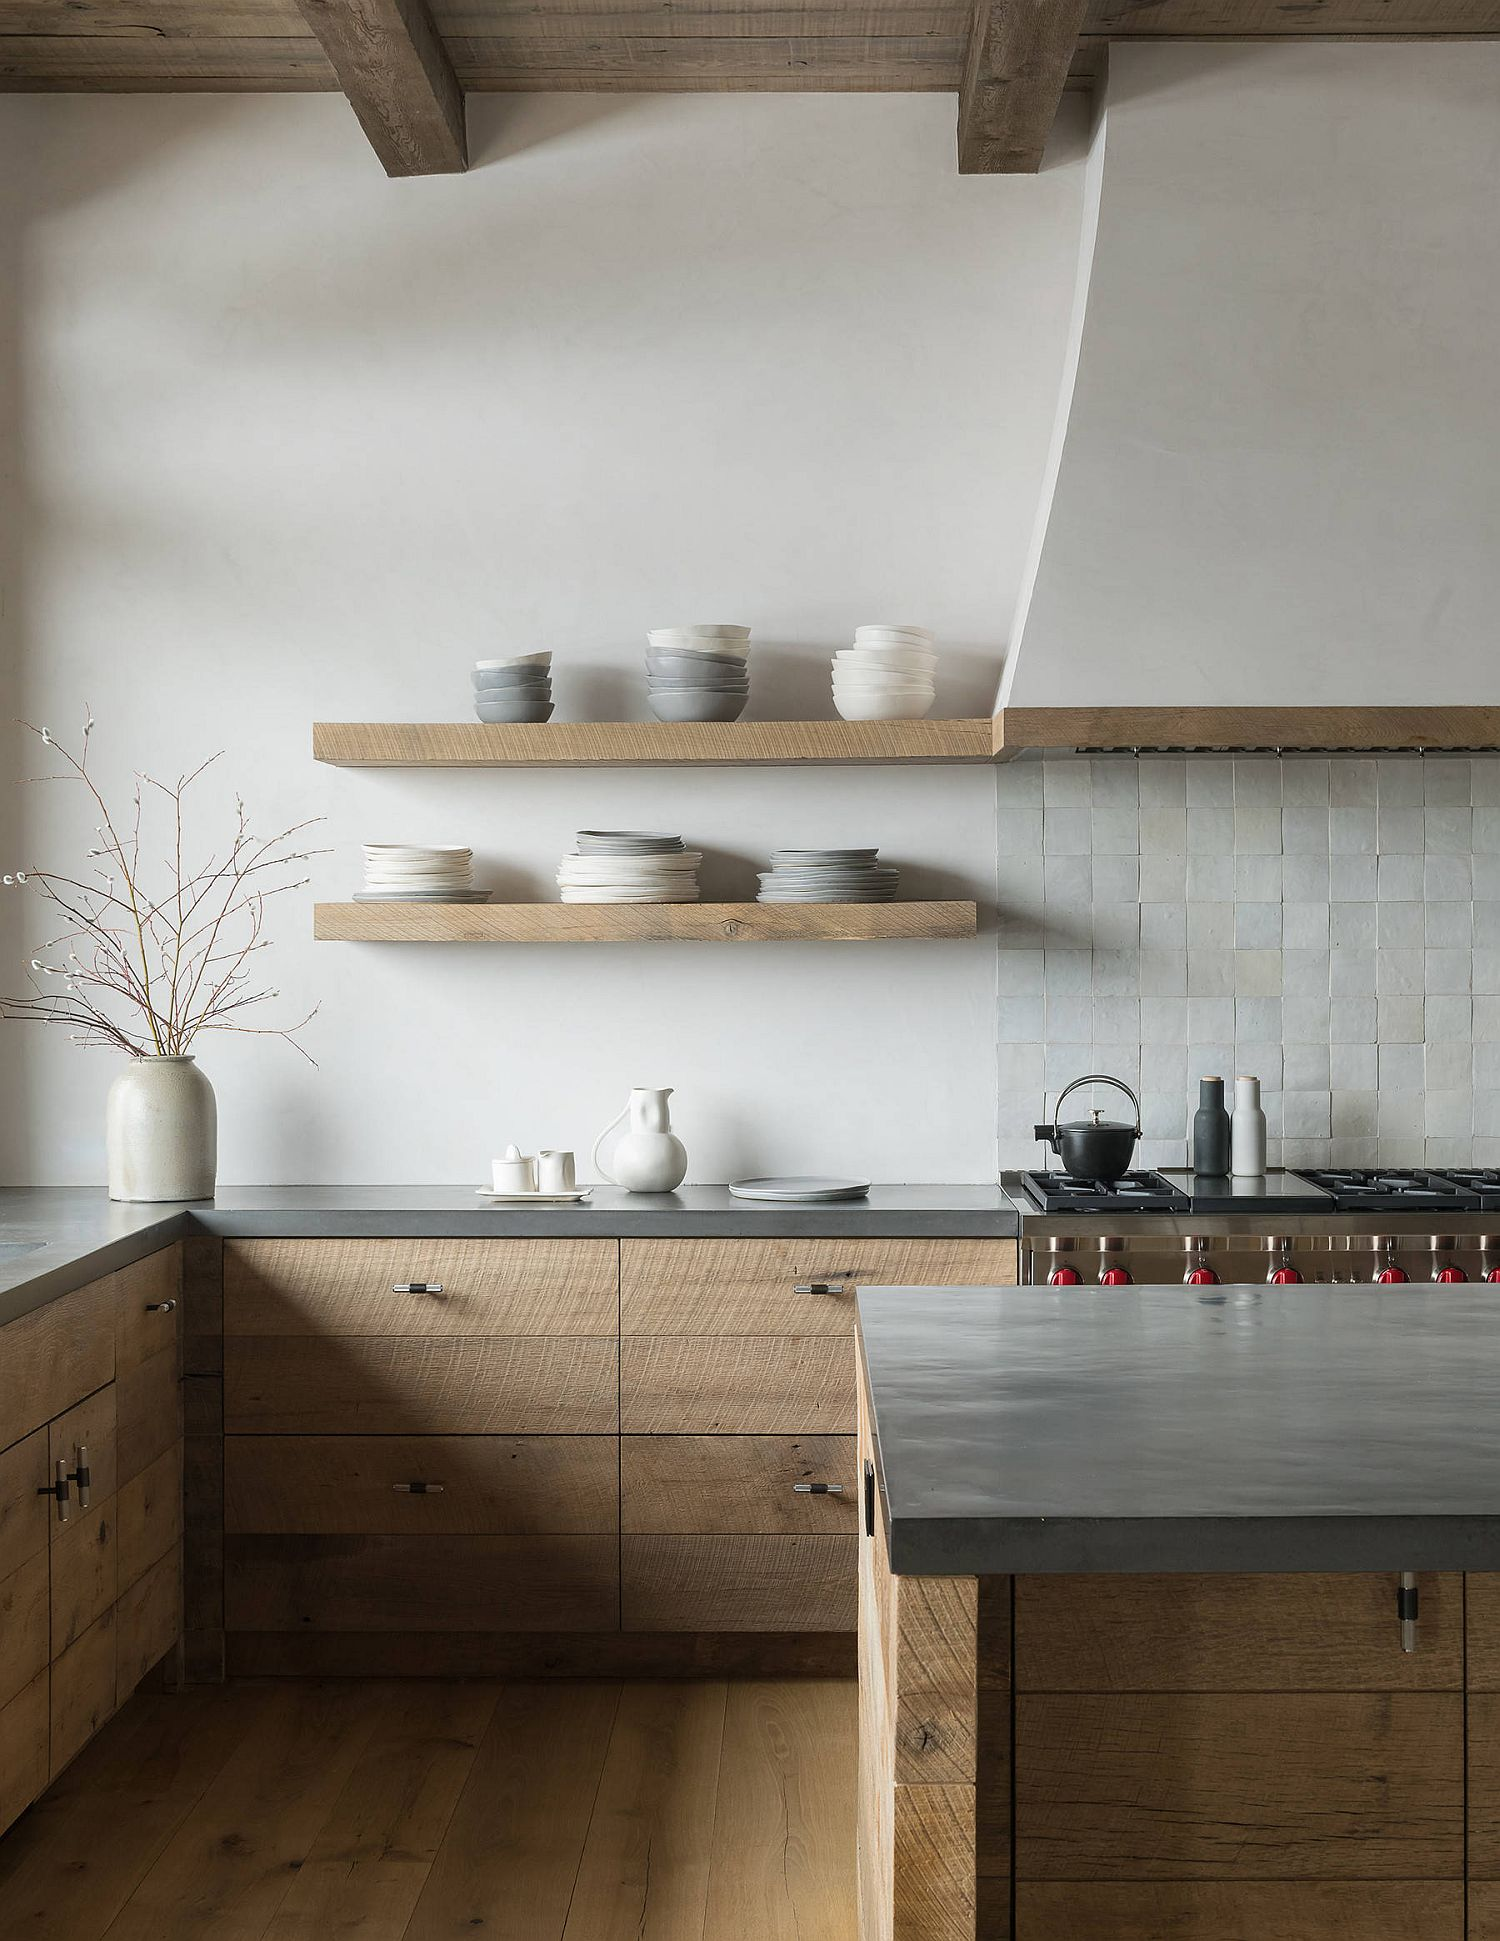 Rustic-and-SCandinavian-styles-rolled-into-one-in-the-minimal-kitchen